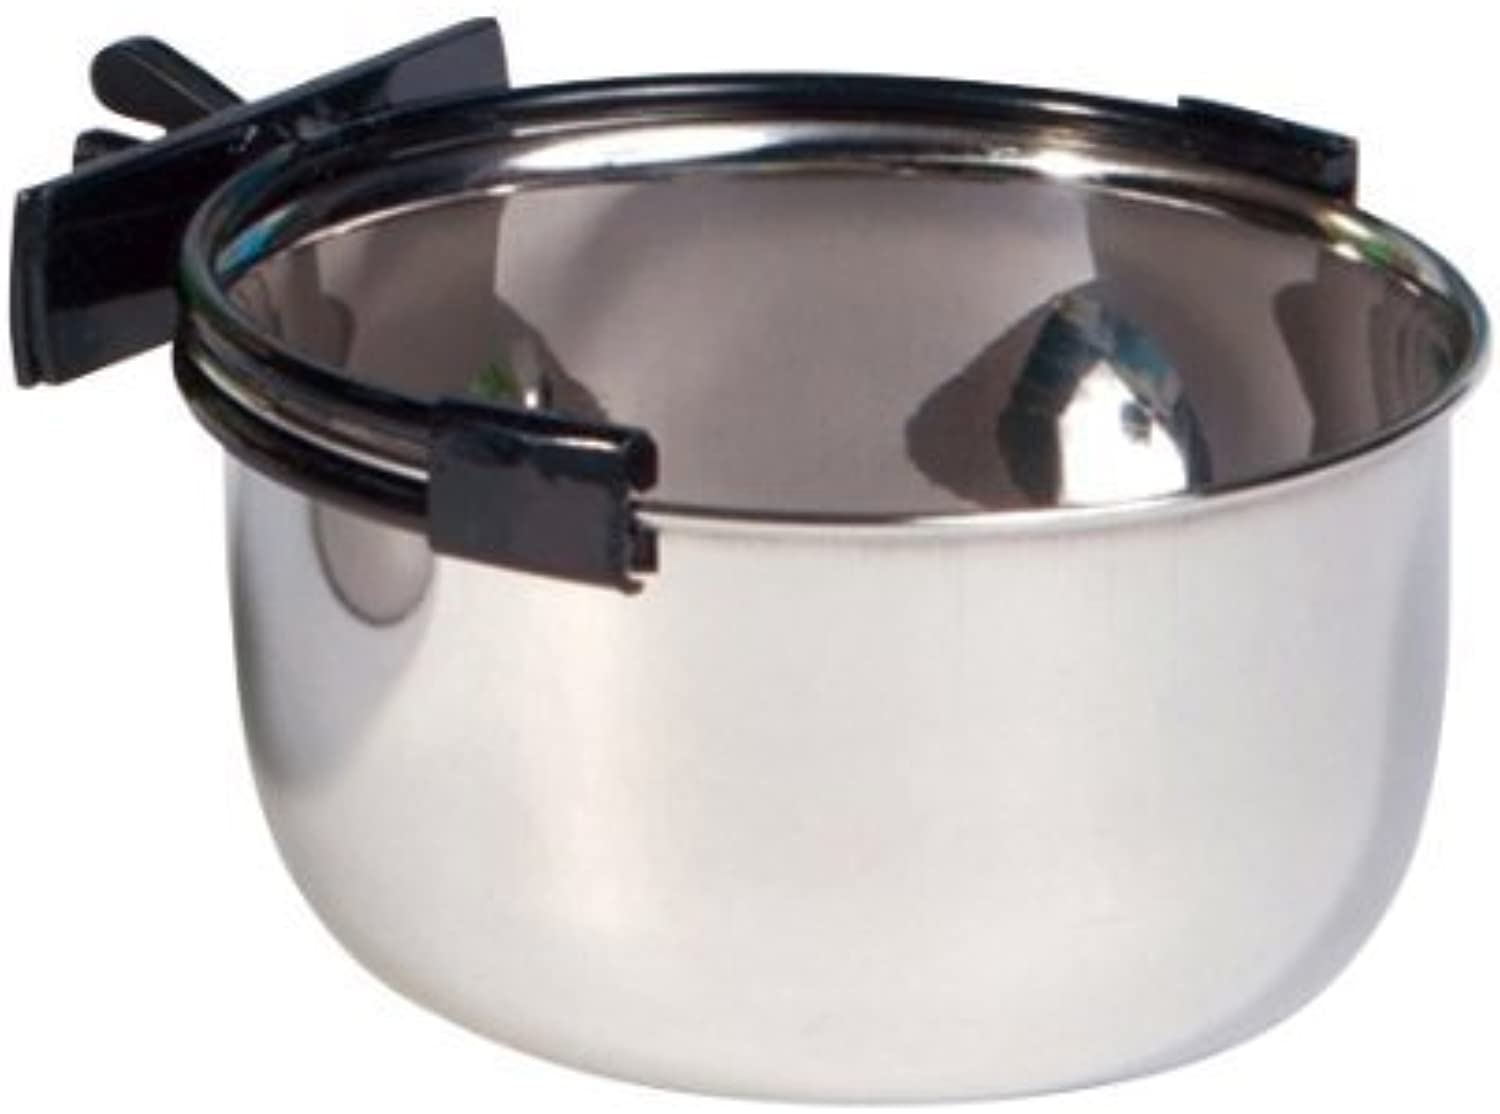 Hagen Living World Stainless Steel bowl, 20Ounce by Living World (English manual)